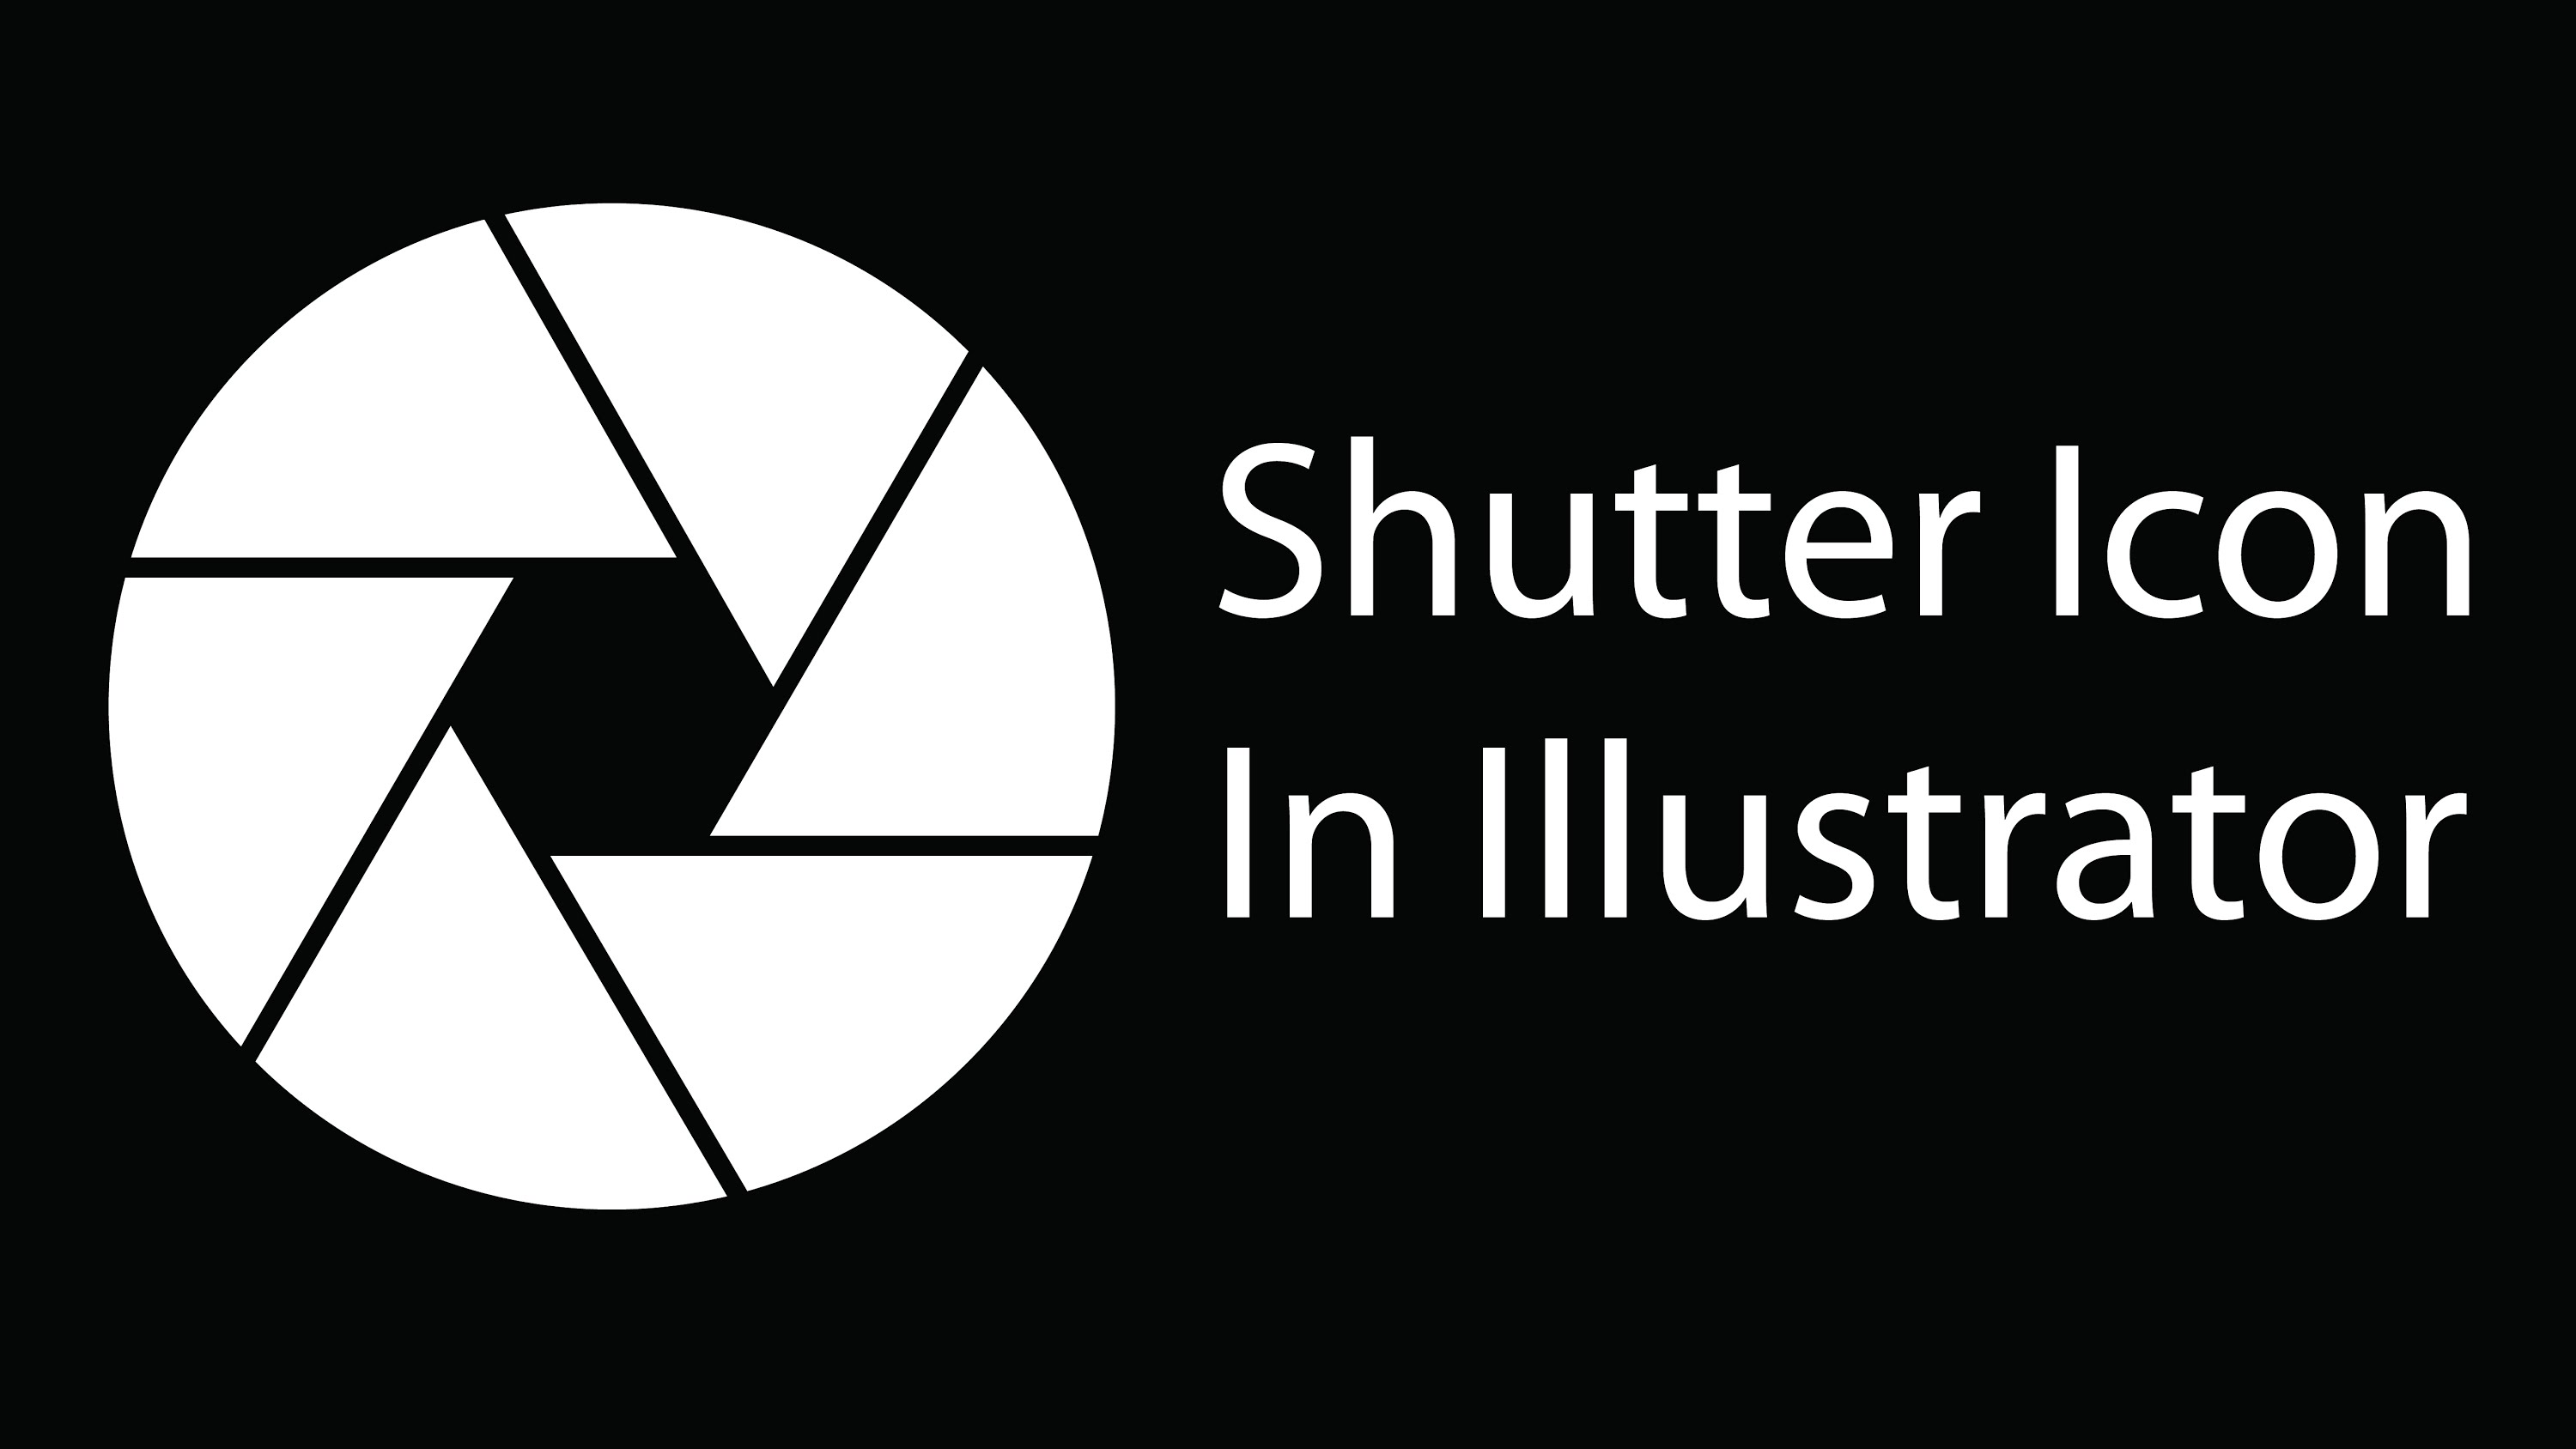 3000x1688 How To Create Vector Shutter Icon In Adobe Illustrator